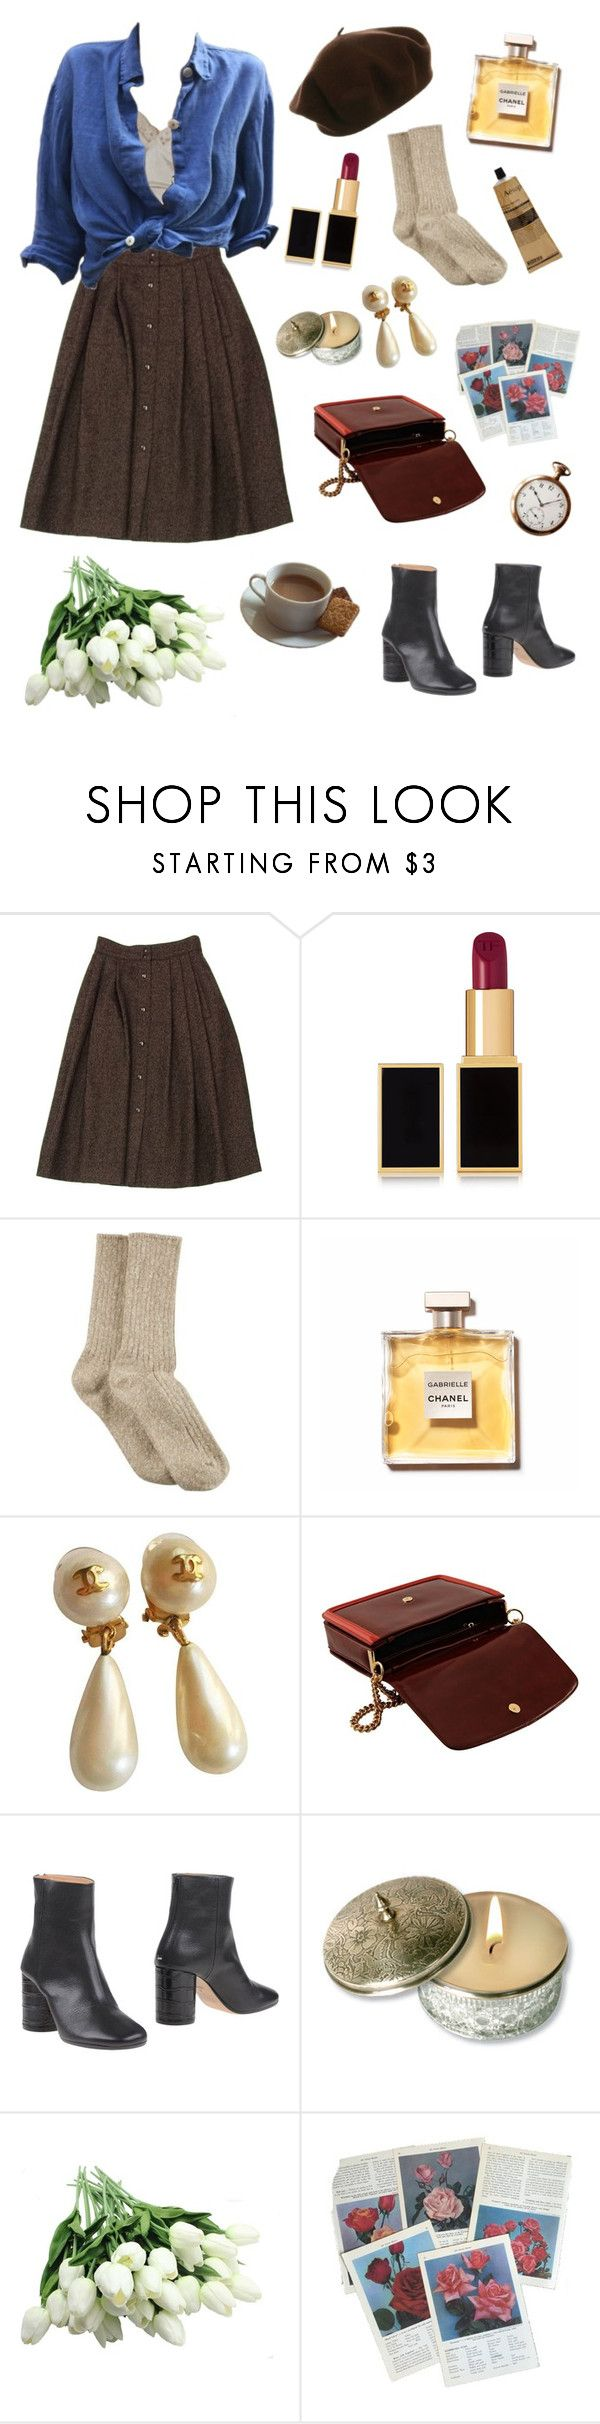 """Untitled #12"" by emotionaldiamond ❤ liked on Polyvore featuring Guy Laroche, Tom Ford, HUE, Chanel, STELLA McCARTNEY, Maison Margiela, CO, Aesop and vintage"